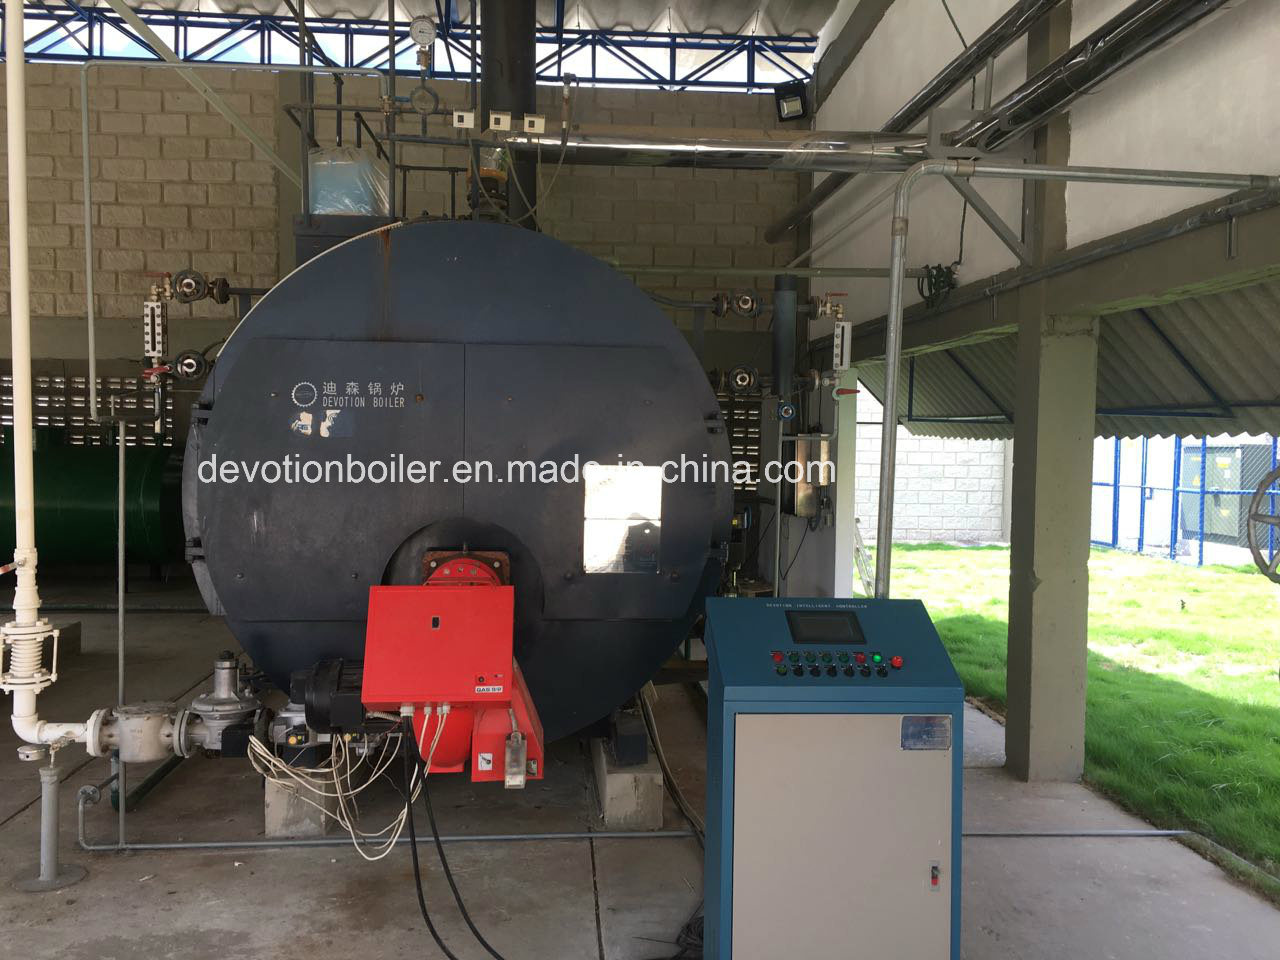 Gas/Oil Packaged Steam Boiler with European Burner and Siemens Control Panel